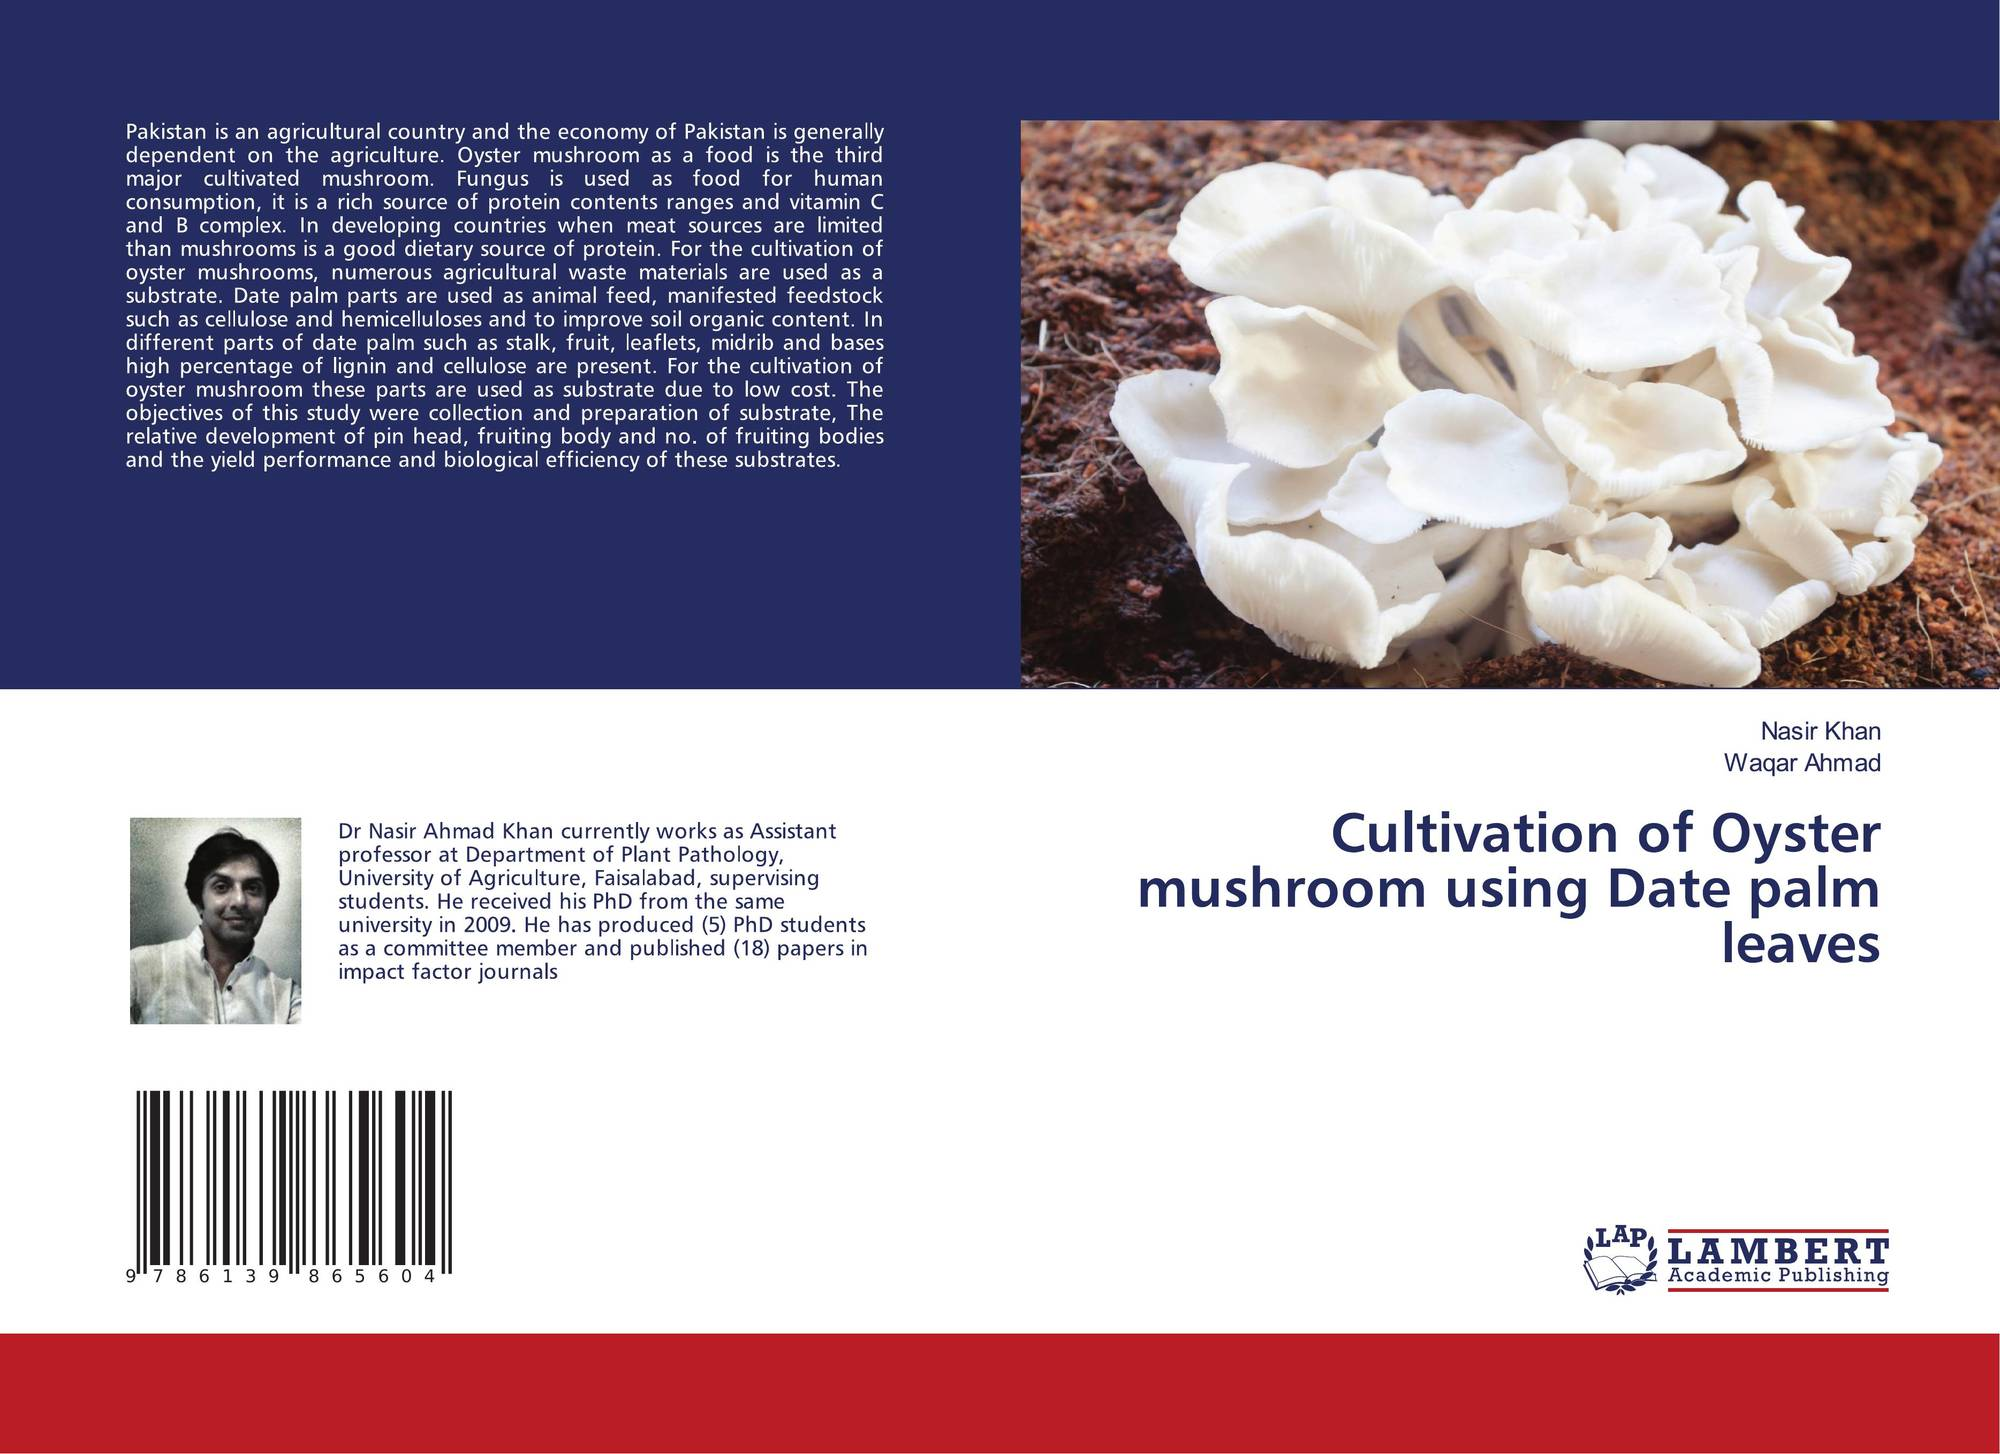 Cultivation of Oyster mushroom using Date palm leaves, 978-613-9